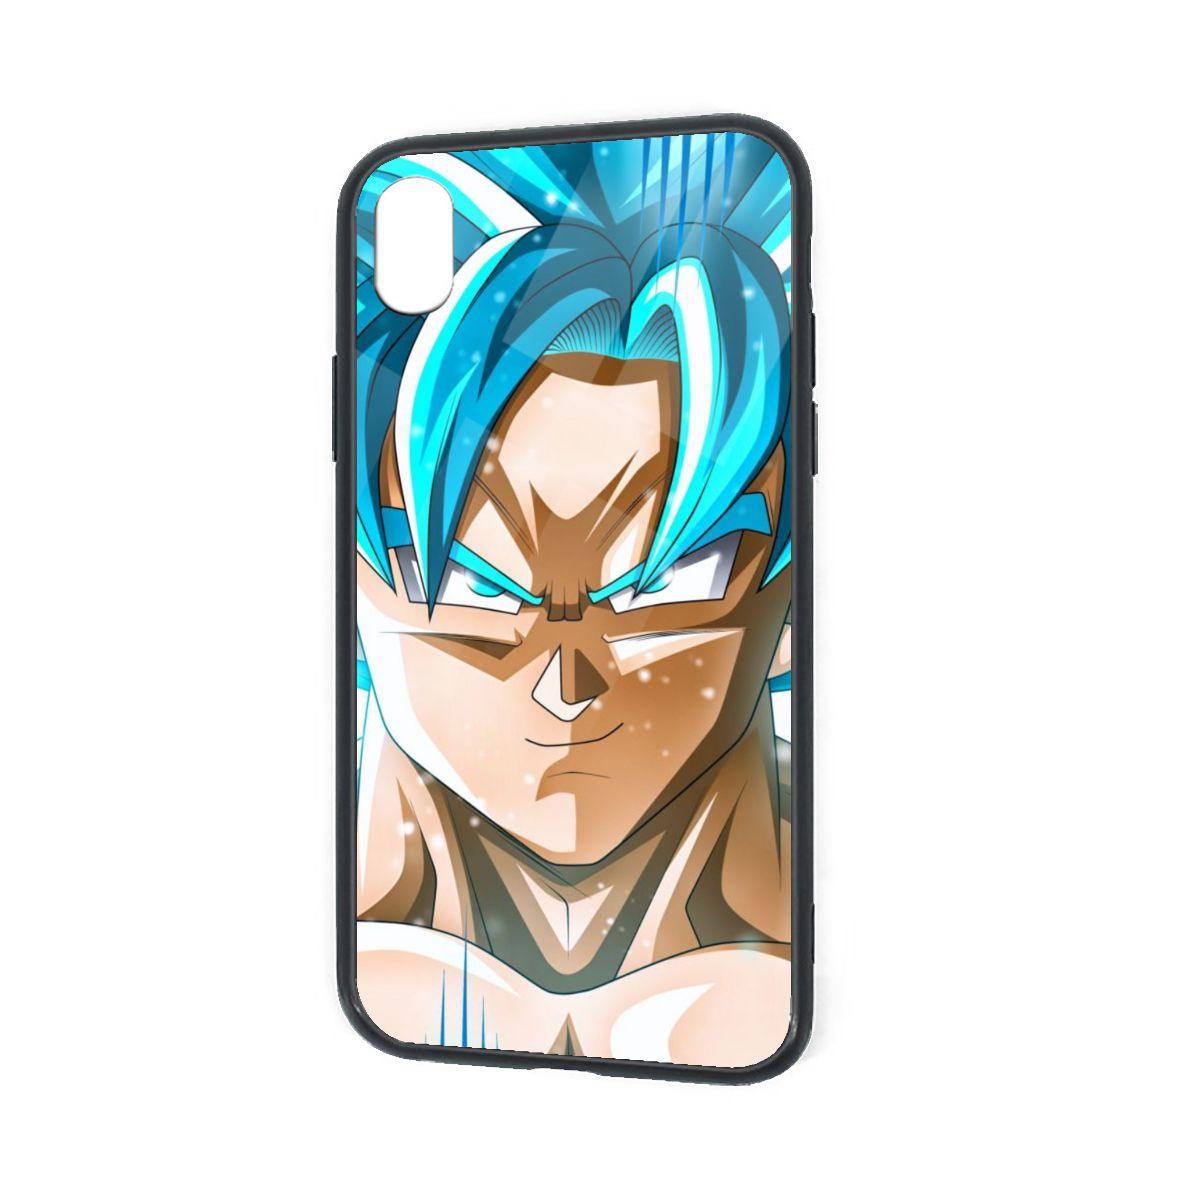 IPhone X XR XS 6 7 8 Plus Hybrid Soft Grip Clear Back Panel Ultra-Thin [Slim Fit] Cover SSG Blue Goku